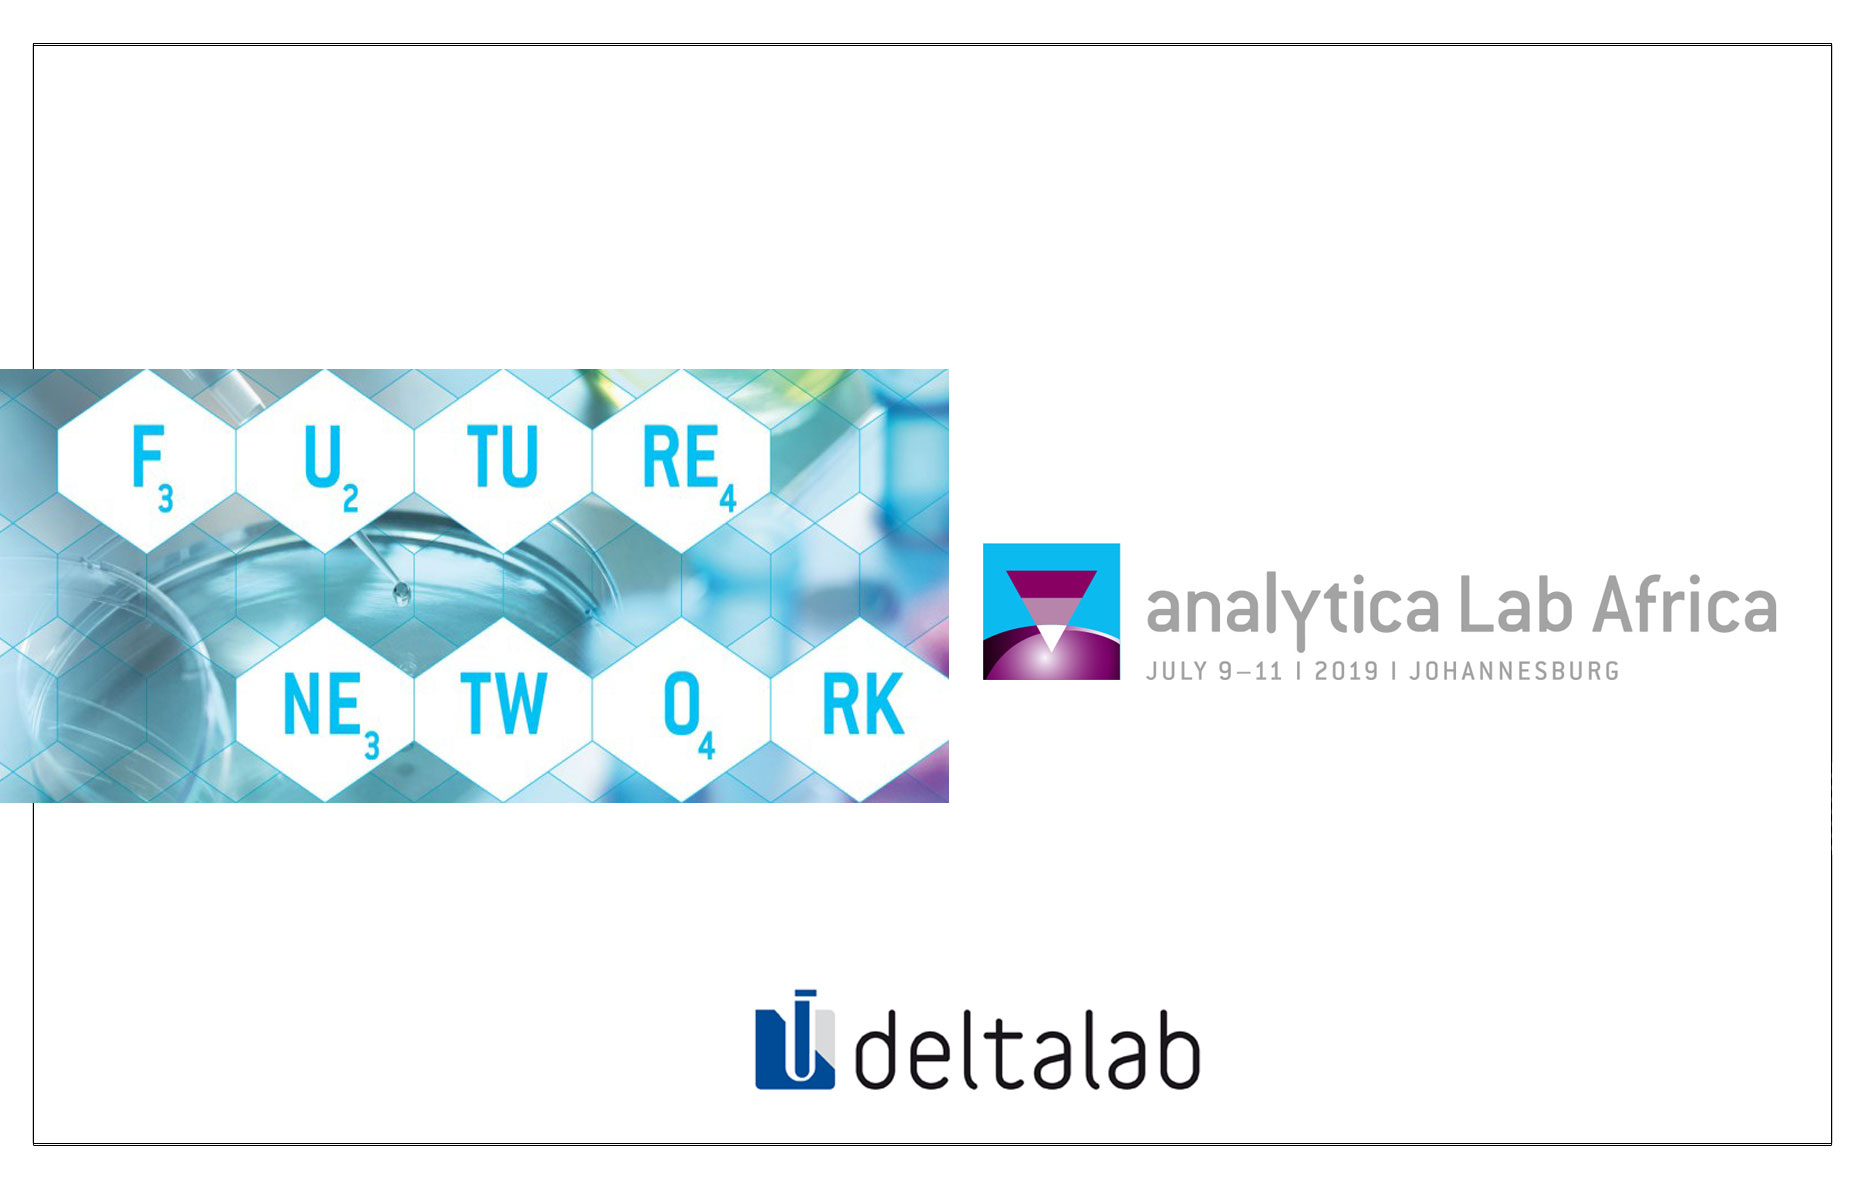 Visit our stand at Analytica Lab Africa 2019